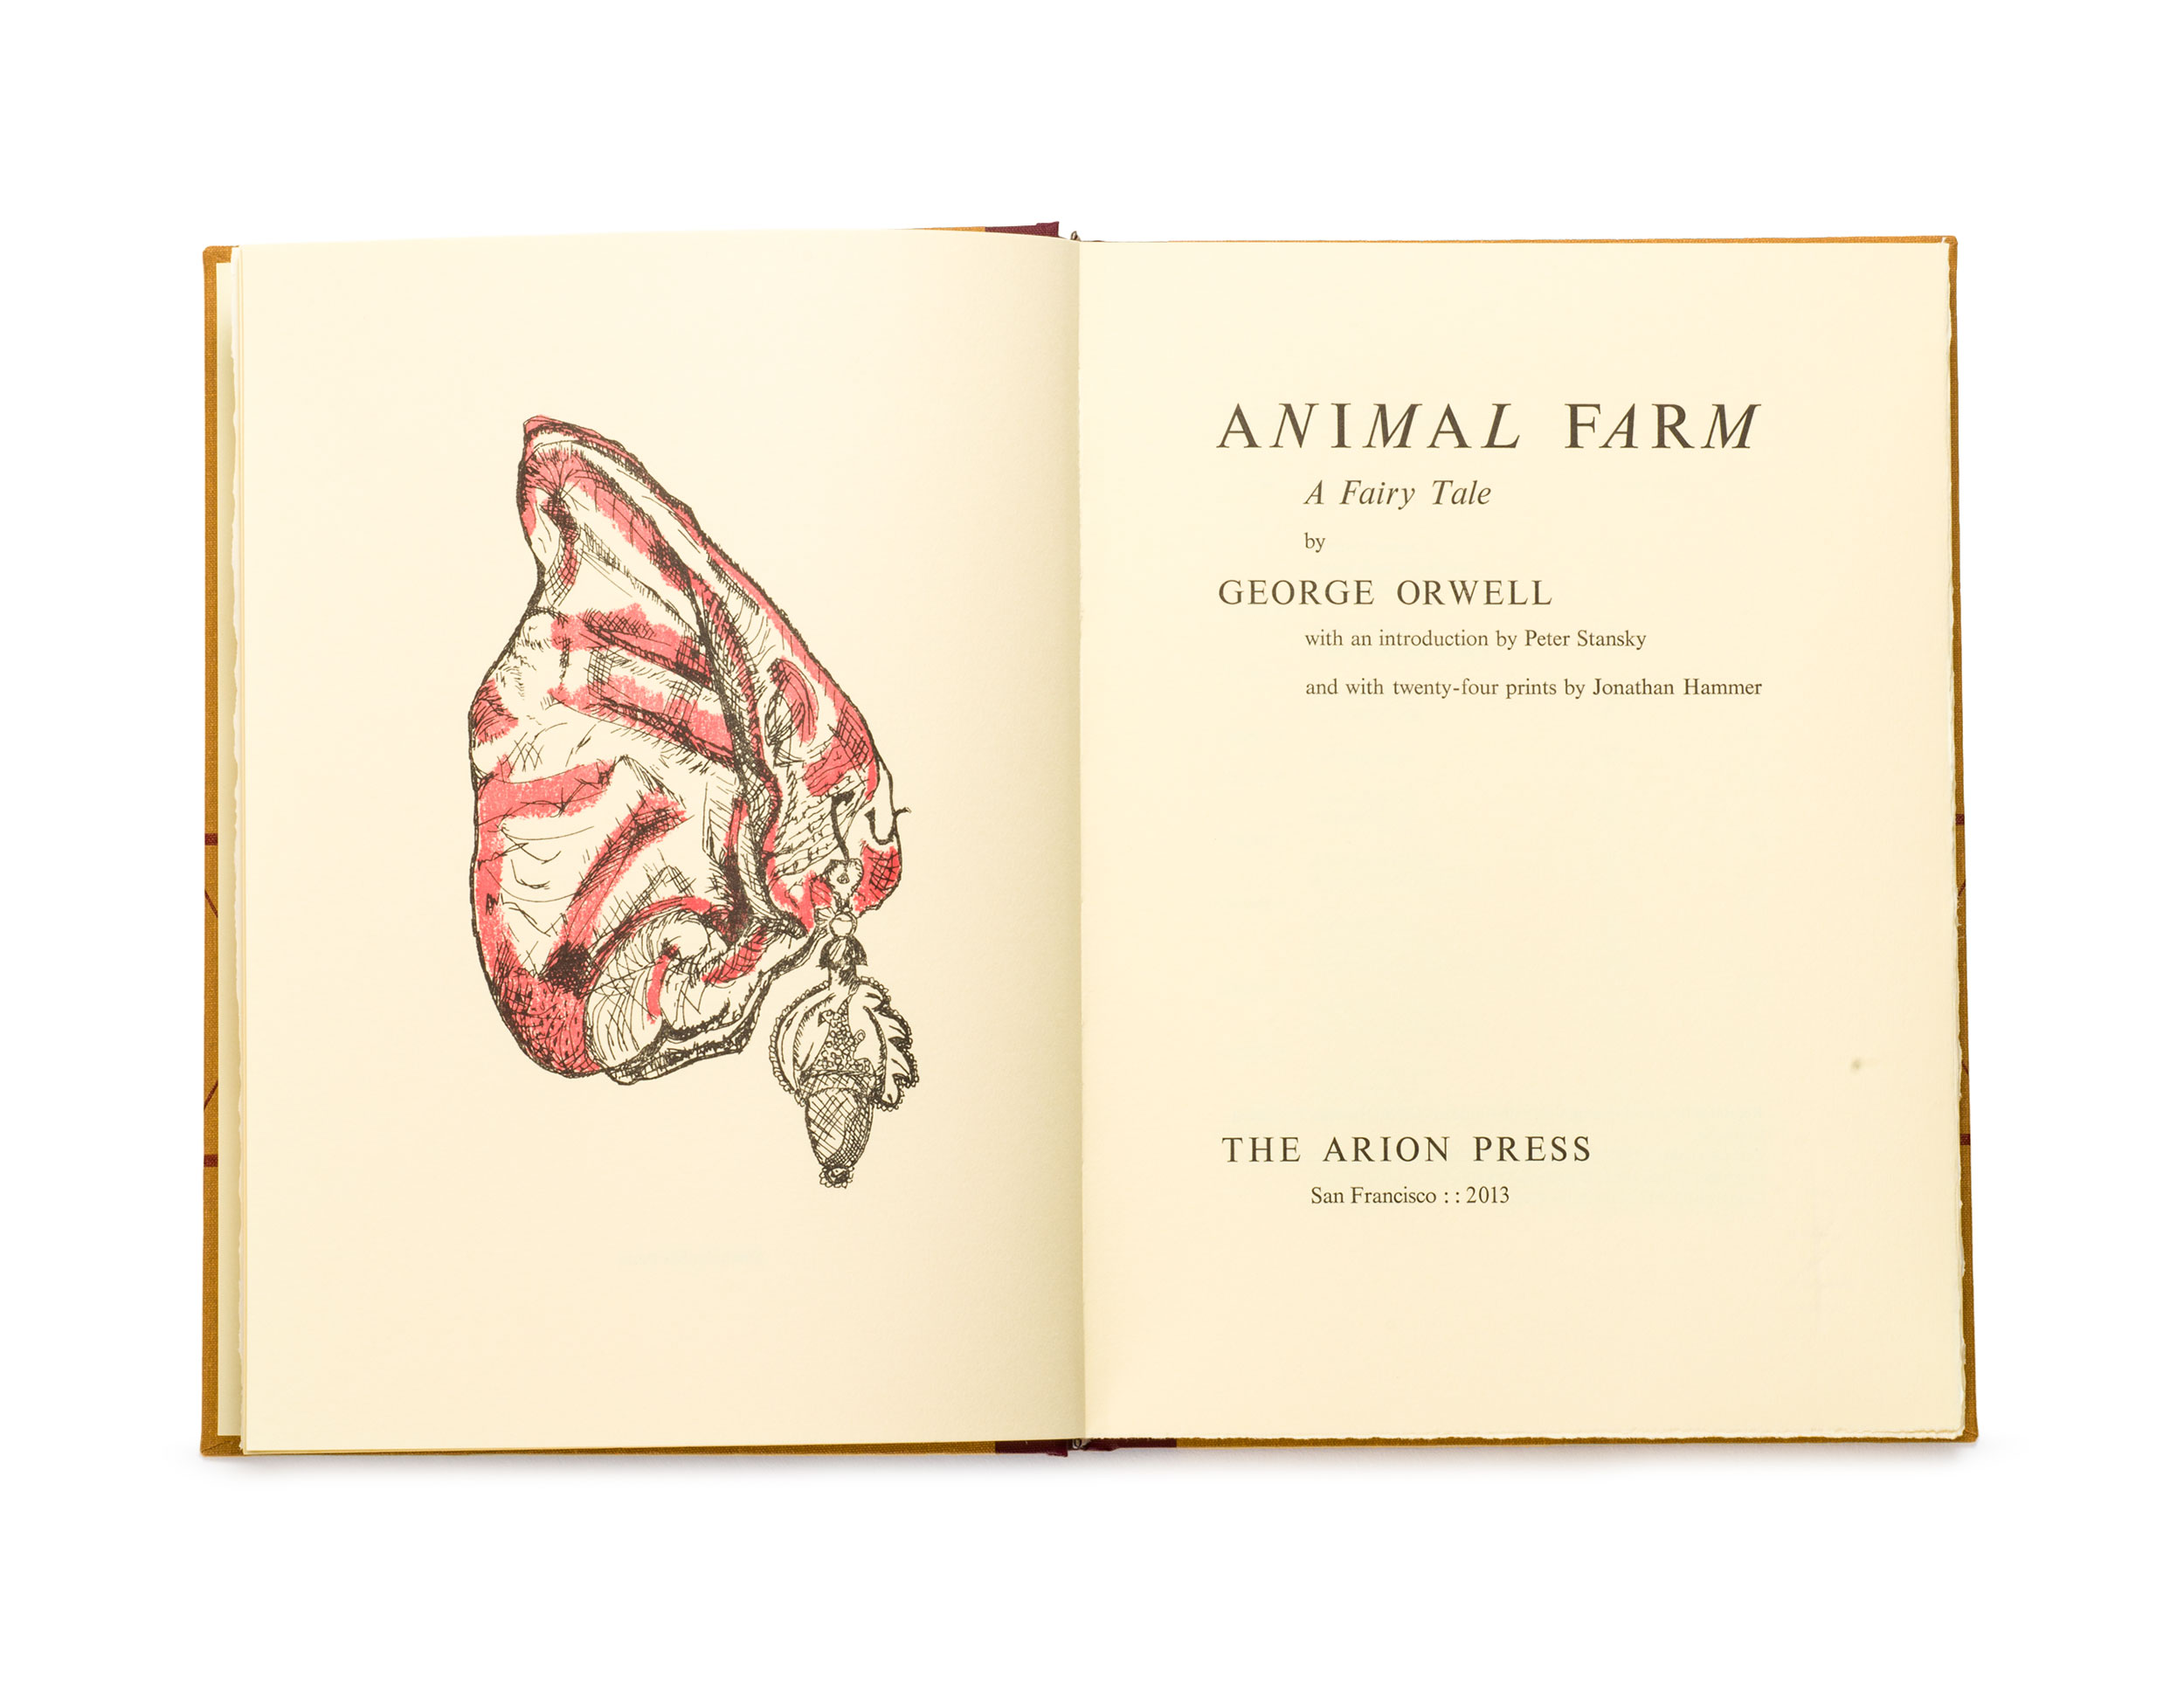 099_Animal_Farm-Title-fix.jpg